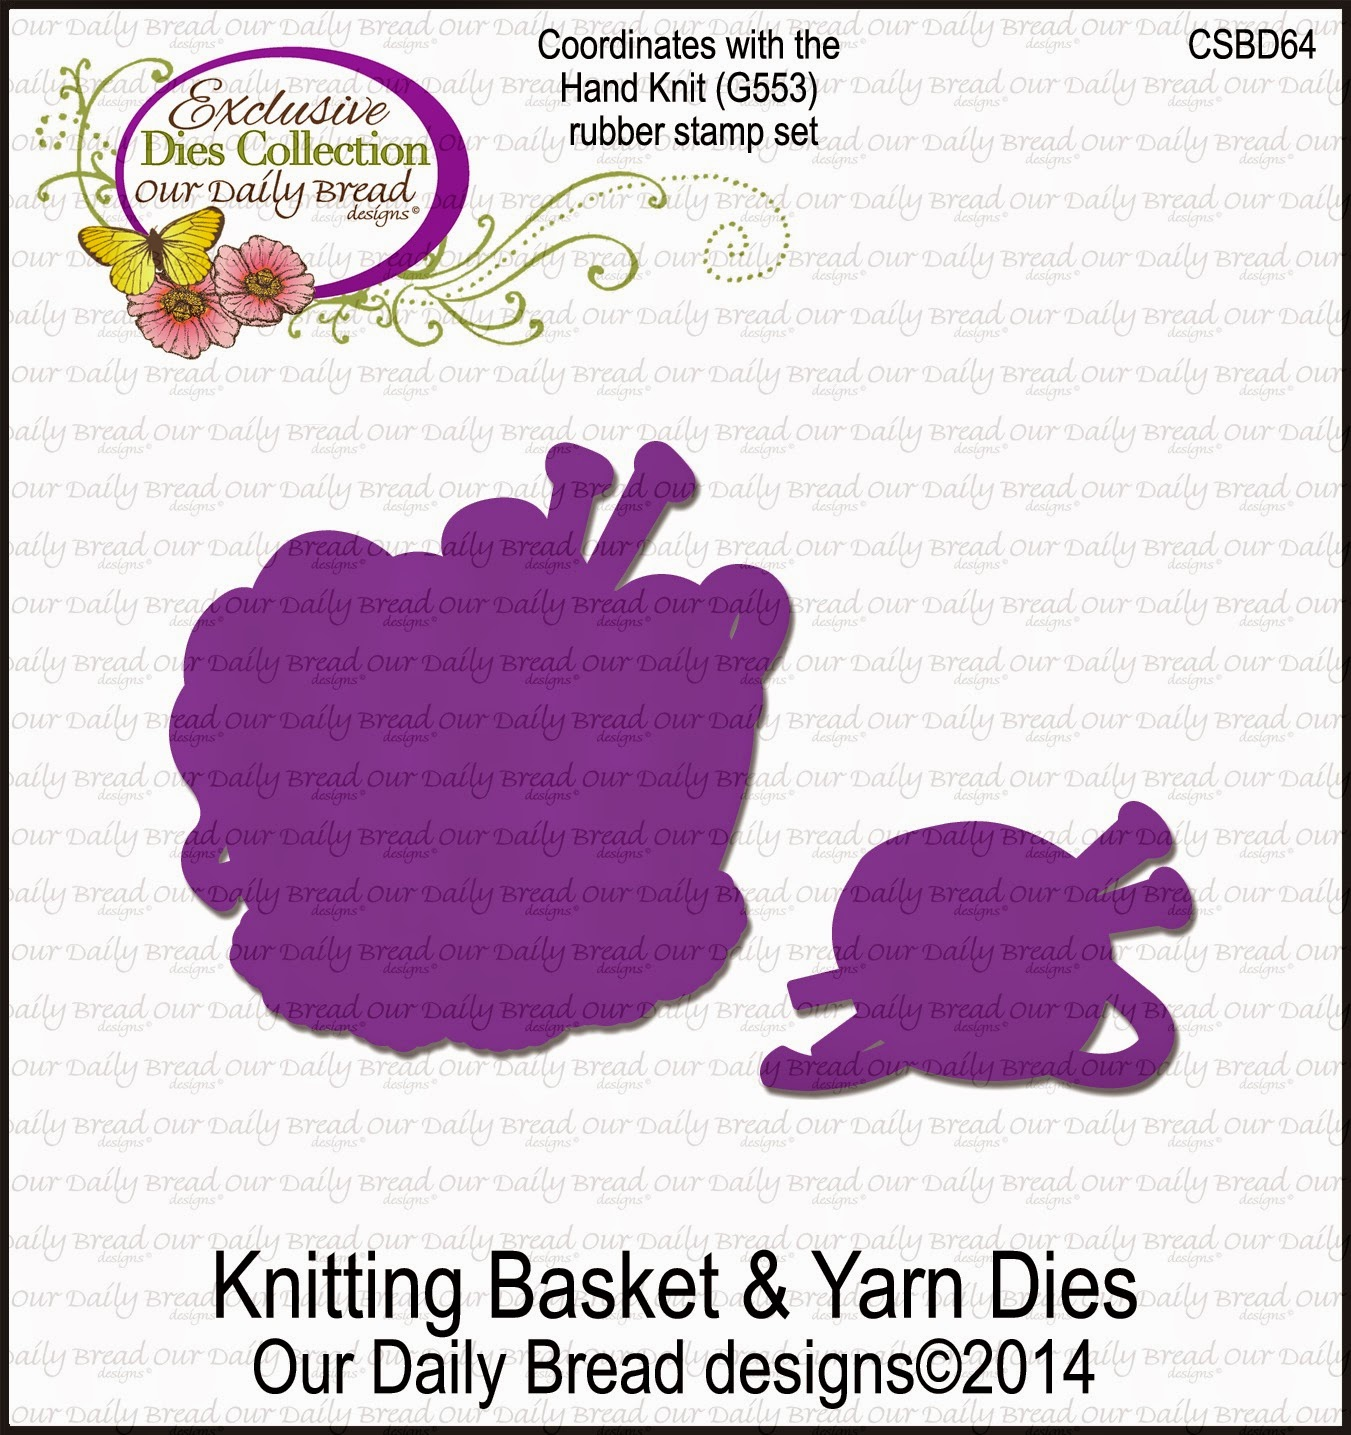 https://www.ourdailybreaddesigns.com/index.php/csbd69-knitting-basket-yarn-dies.html